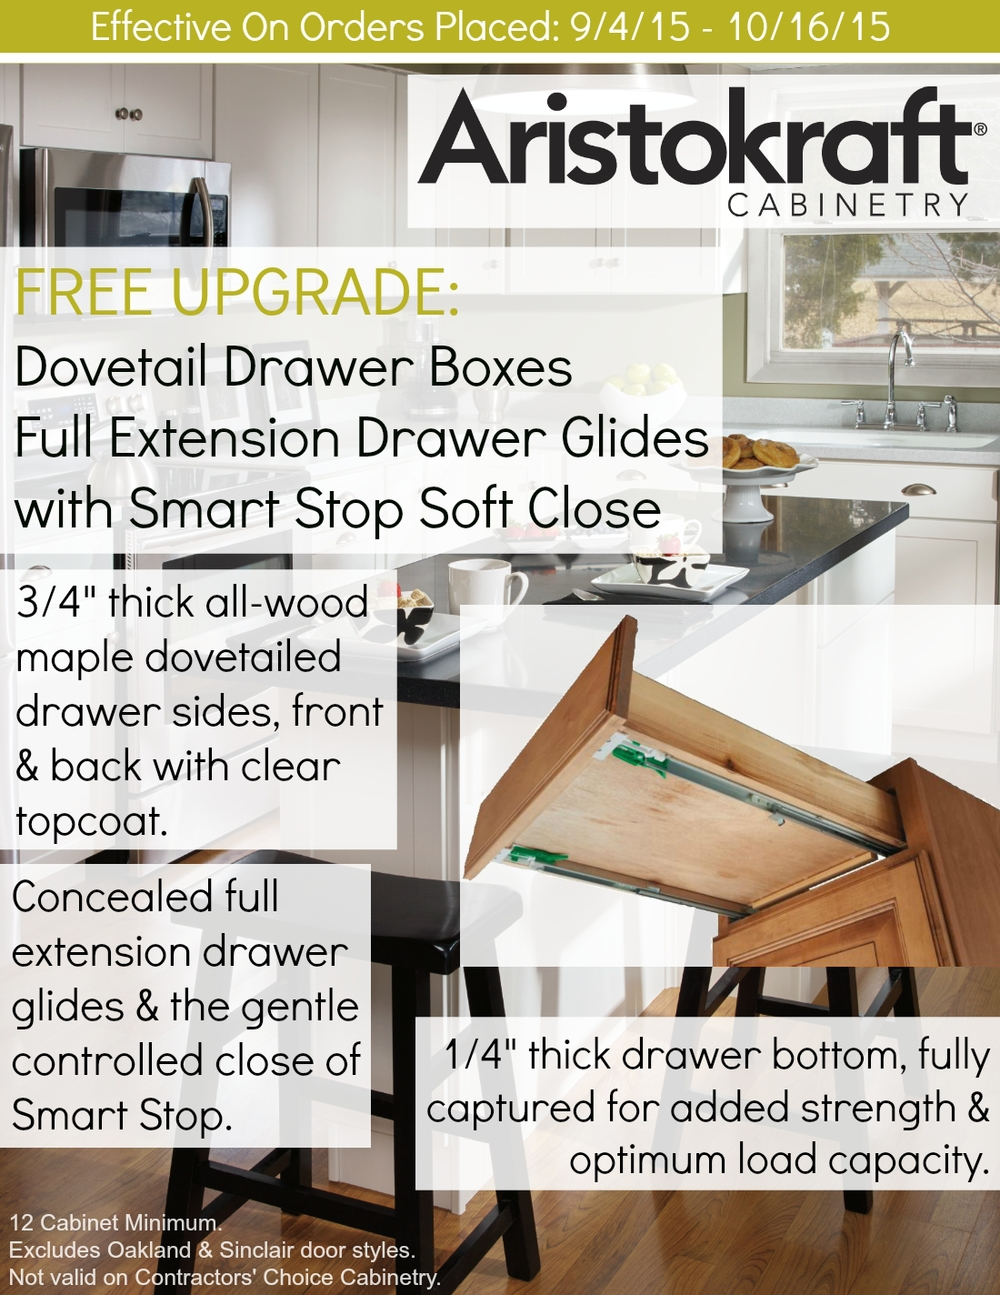 FREE Upgrade With Aristokraft Cabinets! — Andco Kitchens & Baths, Inc.